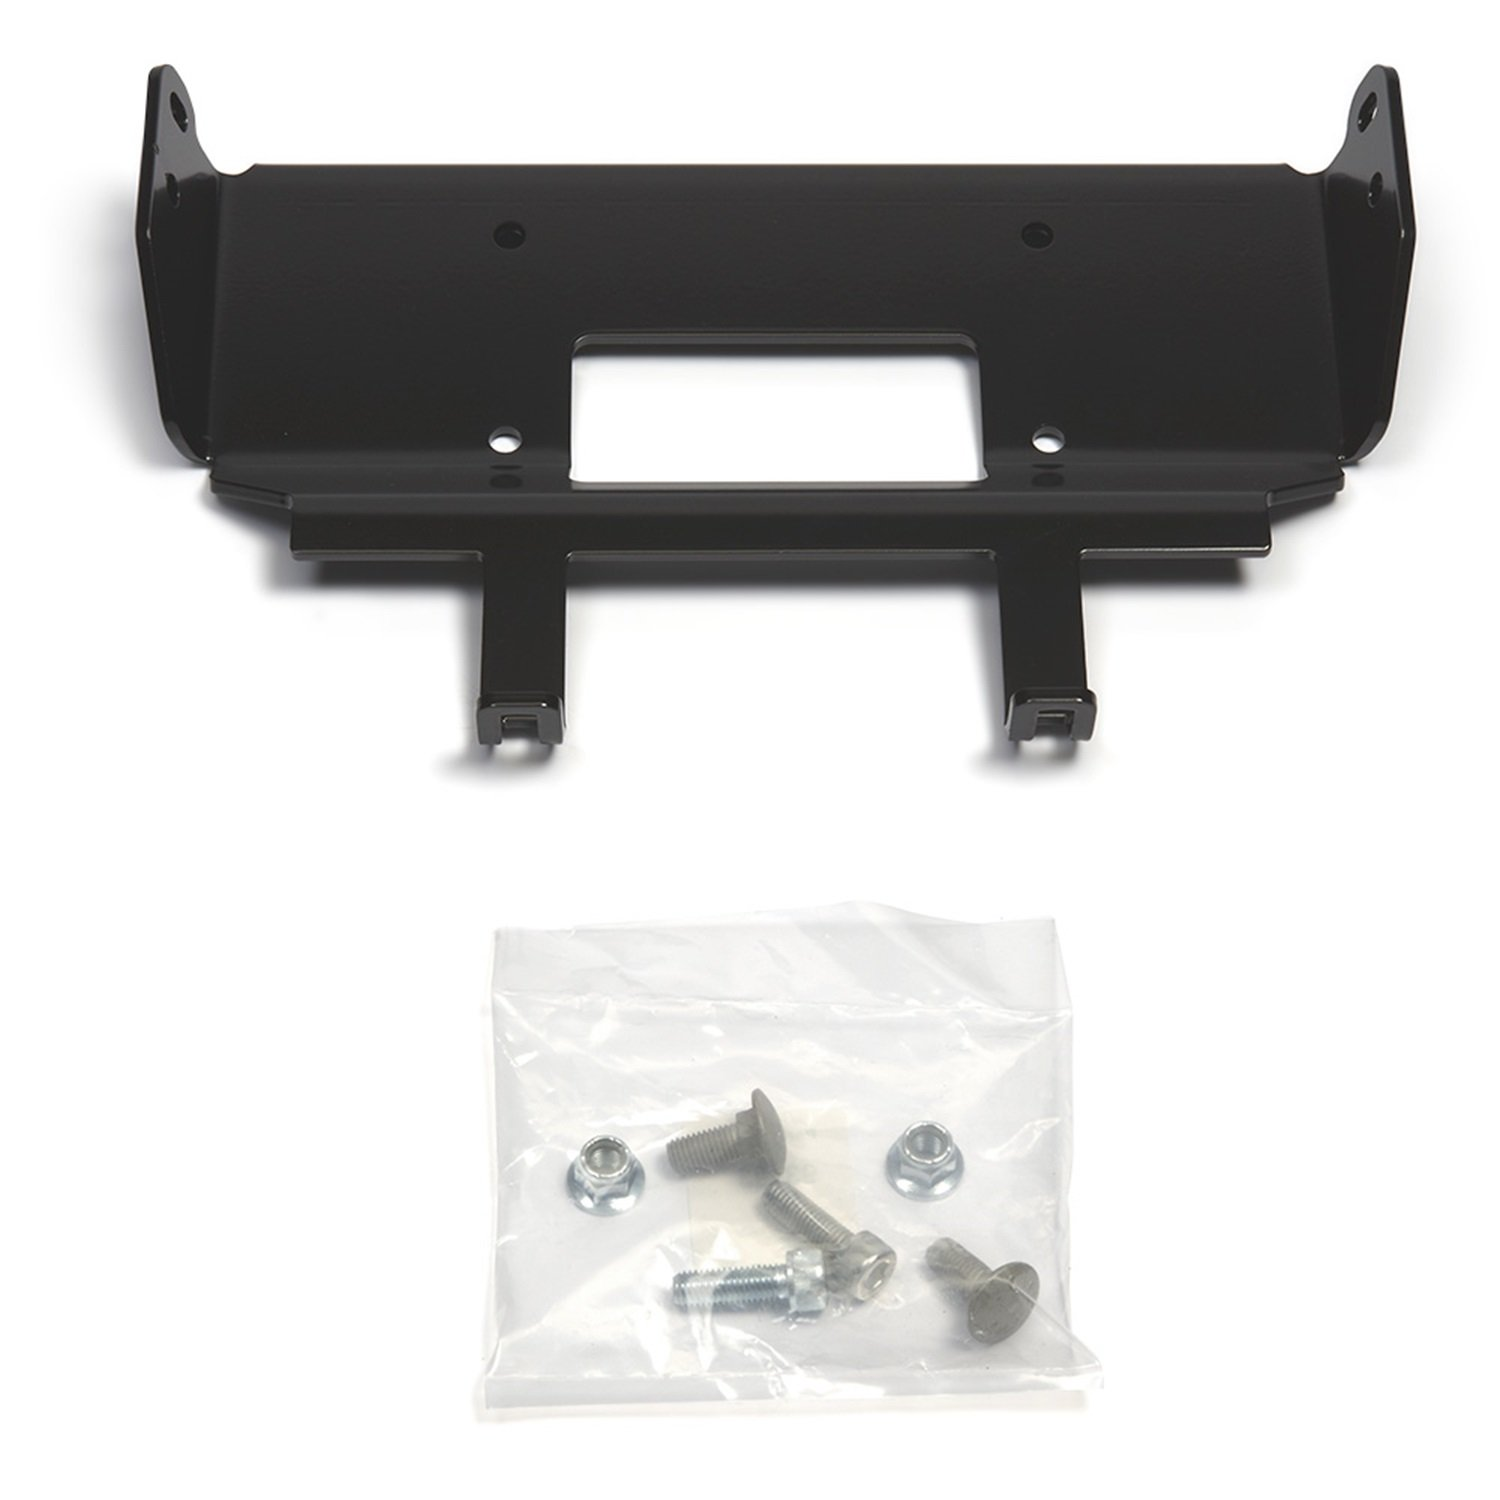 Warn 93790 Winch Mount